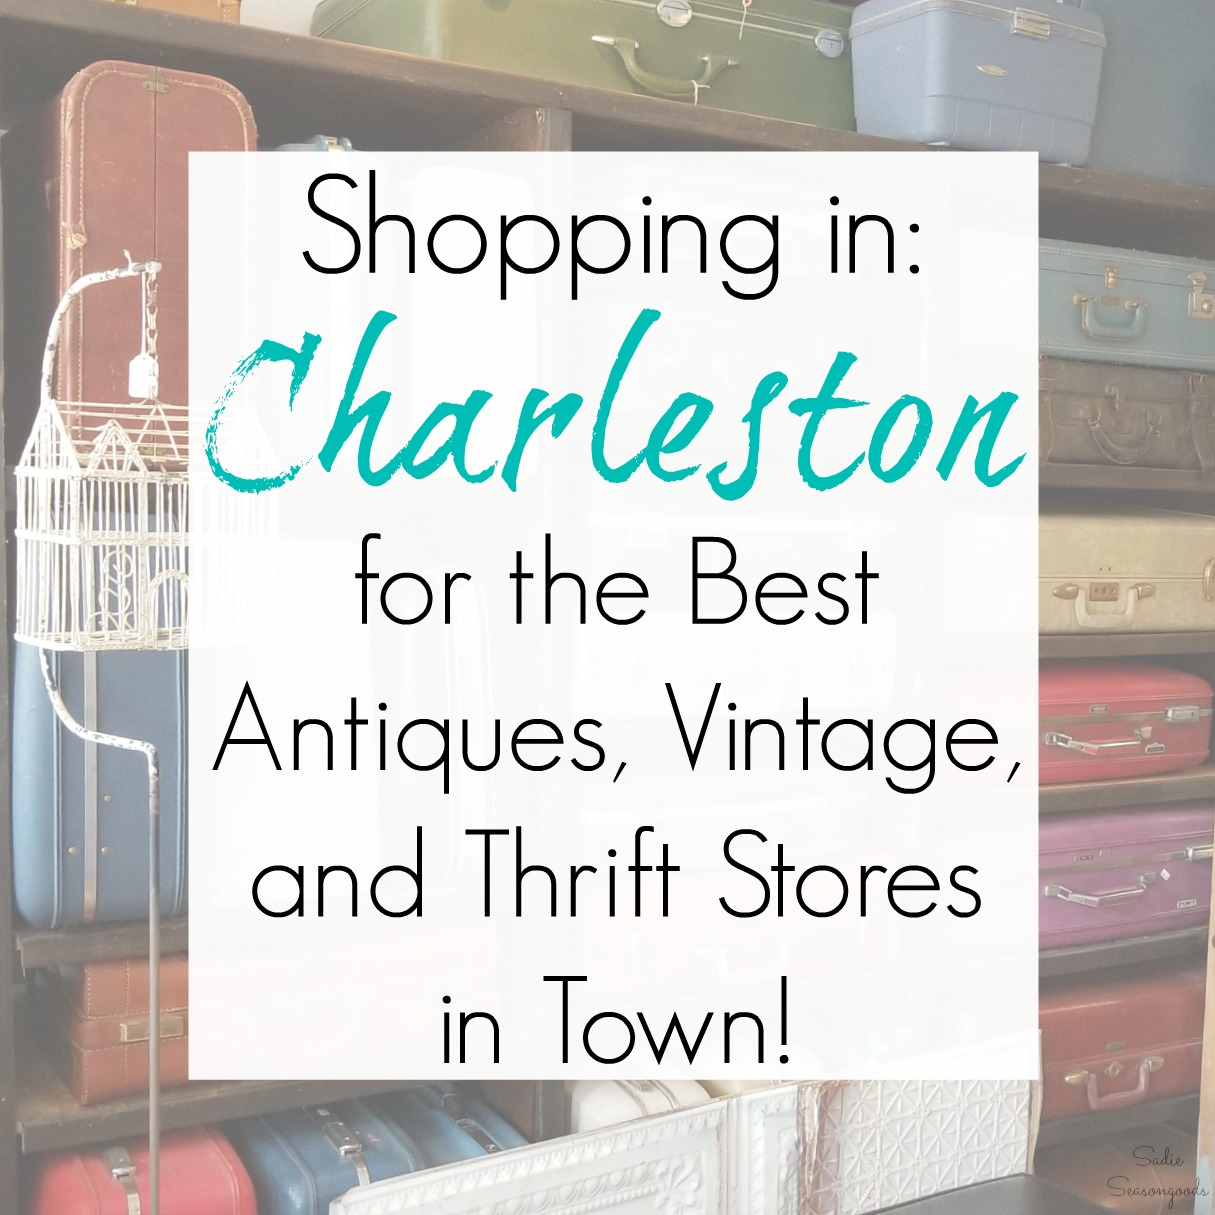 Shopping in Charleston, SC: Best Antiques, Vintage, and Thrift Stores